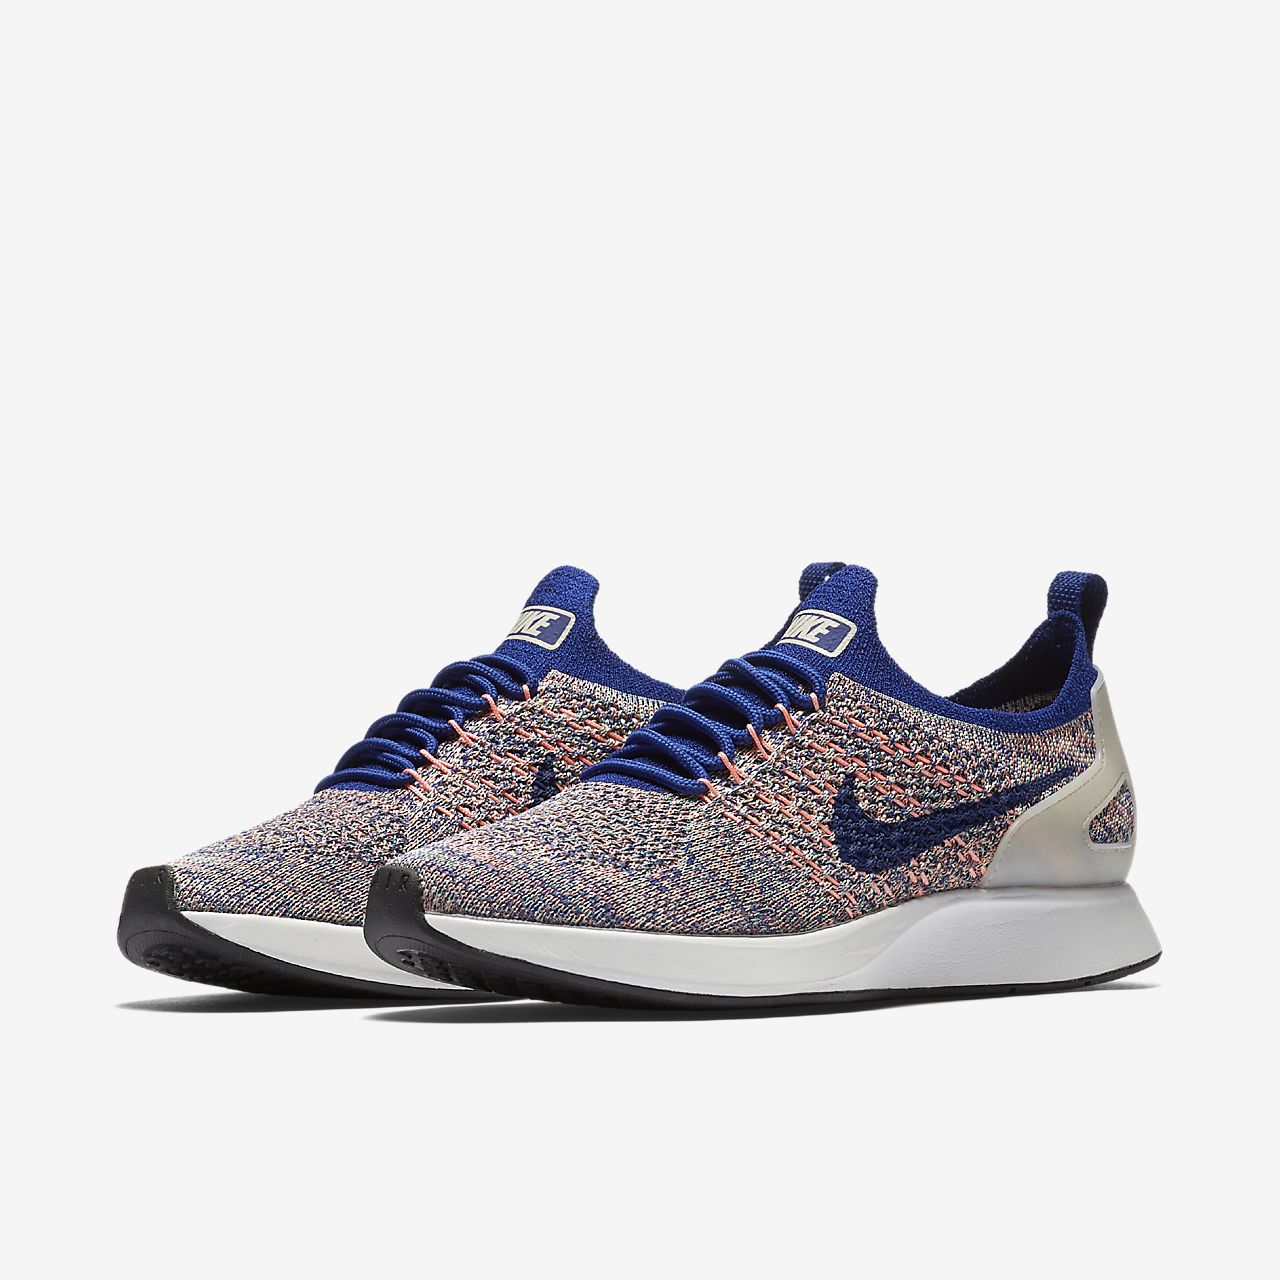 Nike Flyknit Racer shoe Size 9.5/ Black upper with white bottom. Knit by Kight